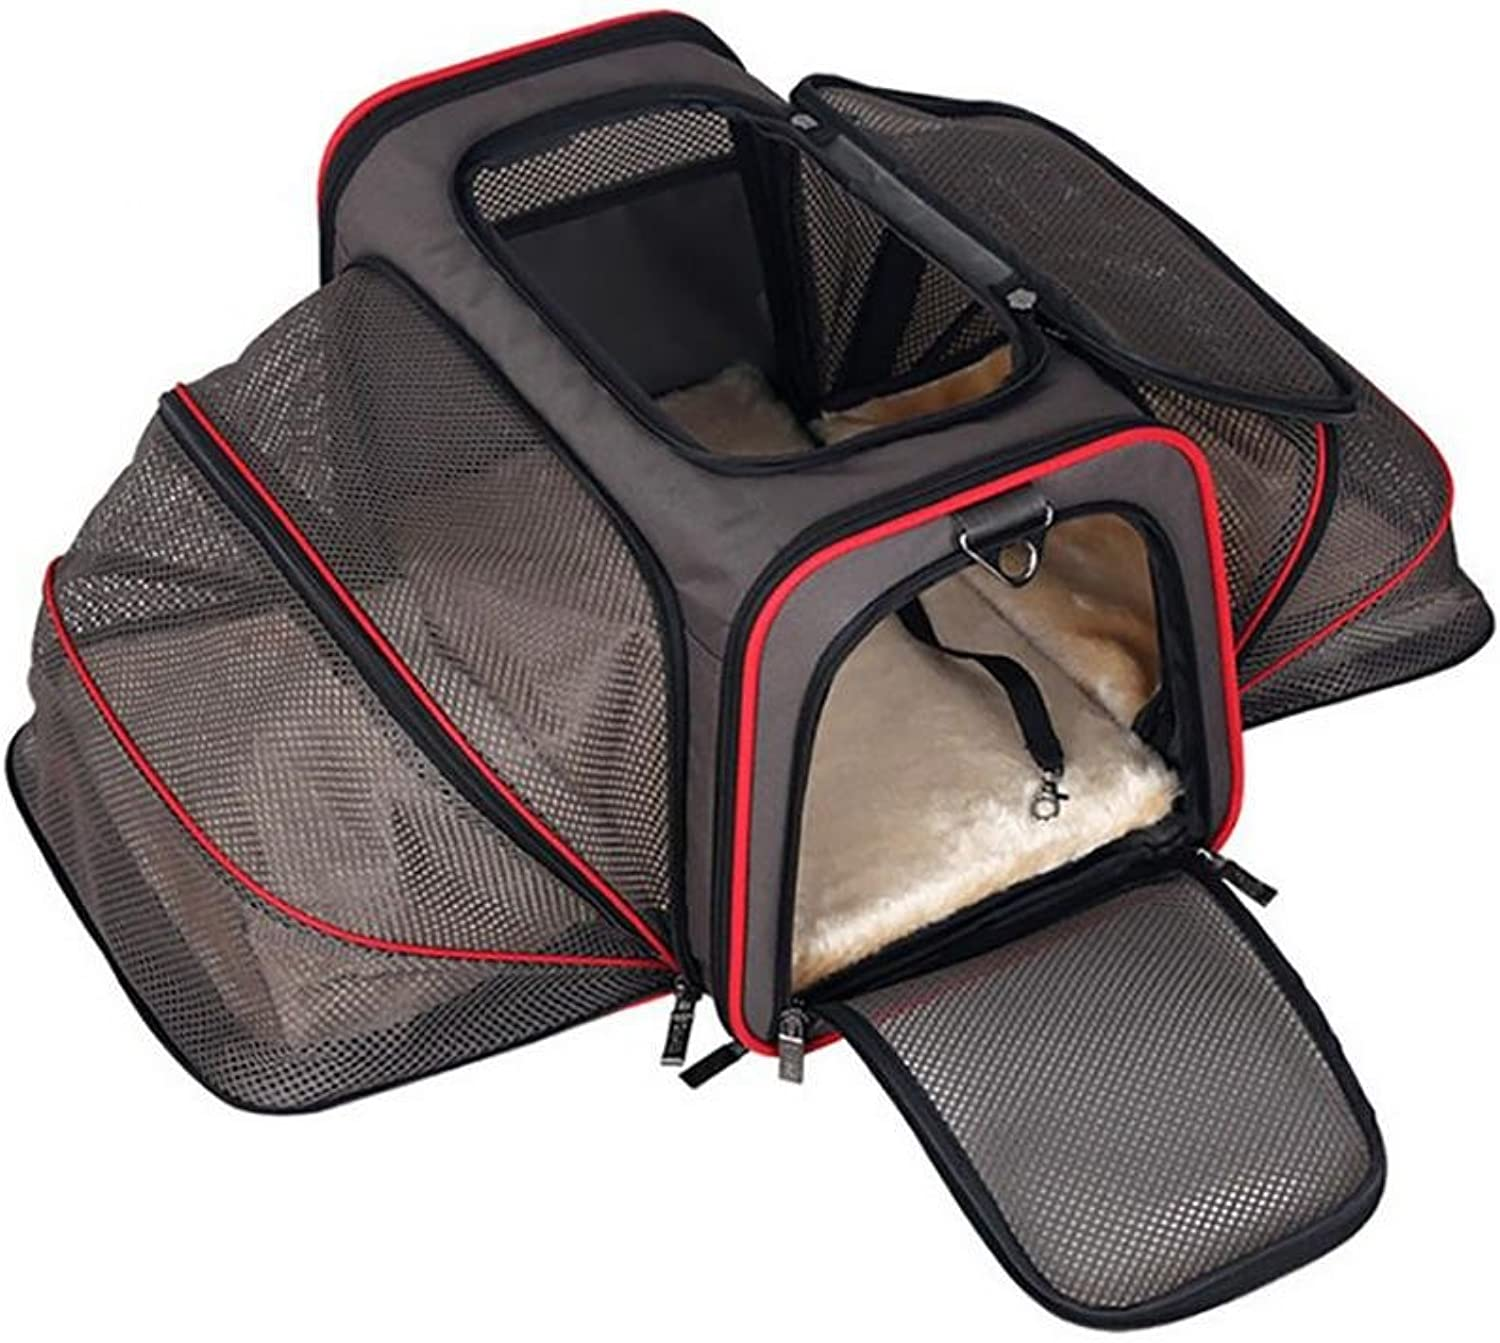 D&F Expandable Soft Sided Pet Carrier for Cats and Dogs, Black   Folding for Easy Transport   For Air or Car Travel (Medium  46cm X 28cm X 28cm)